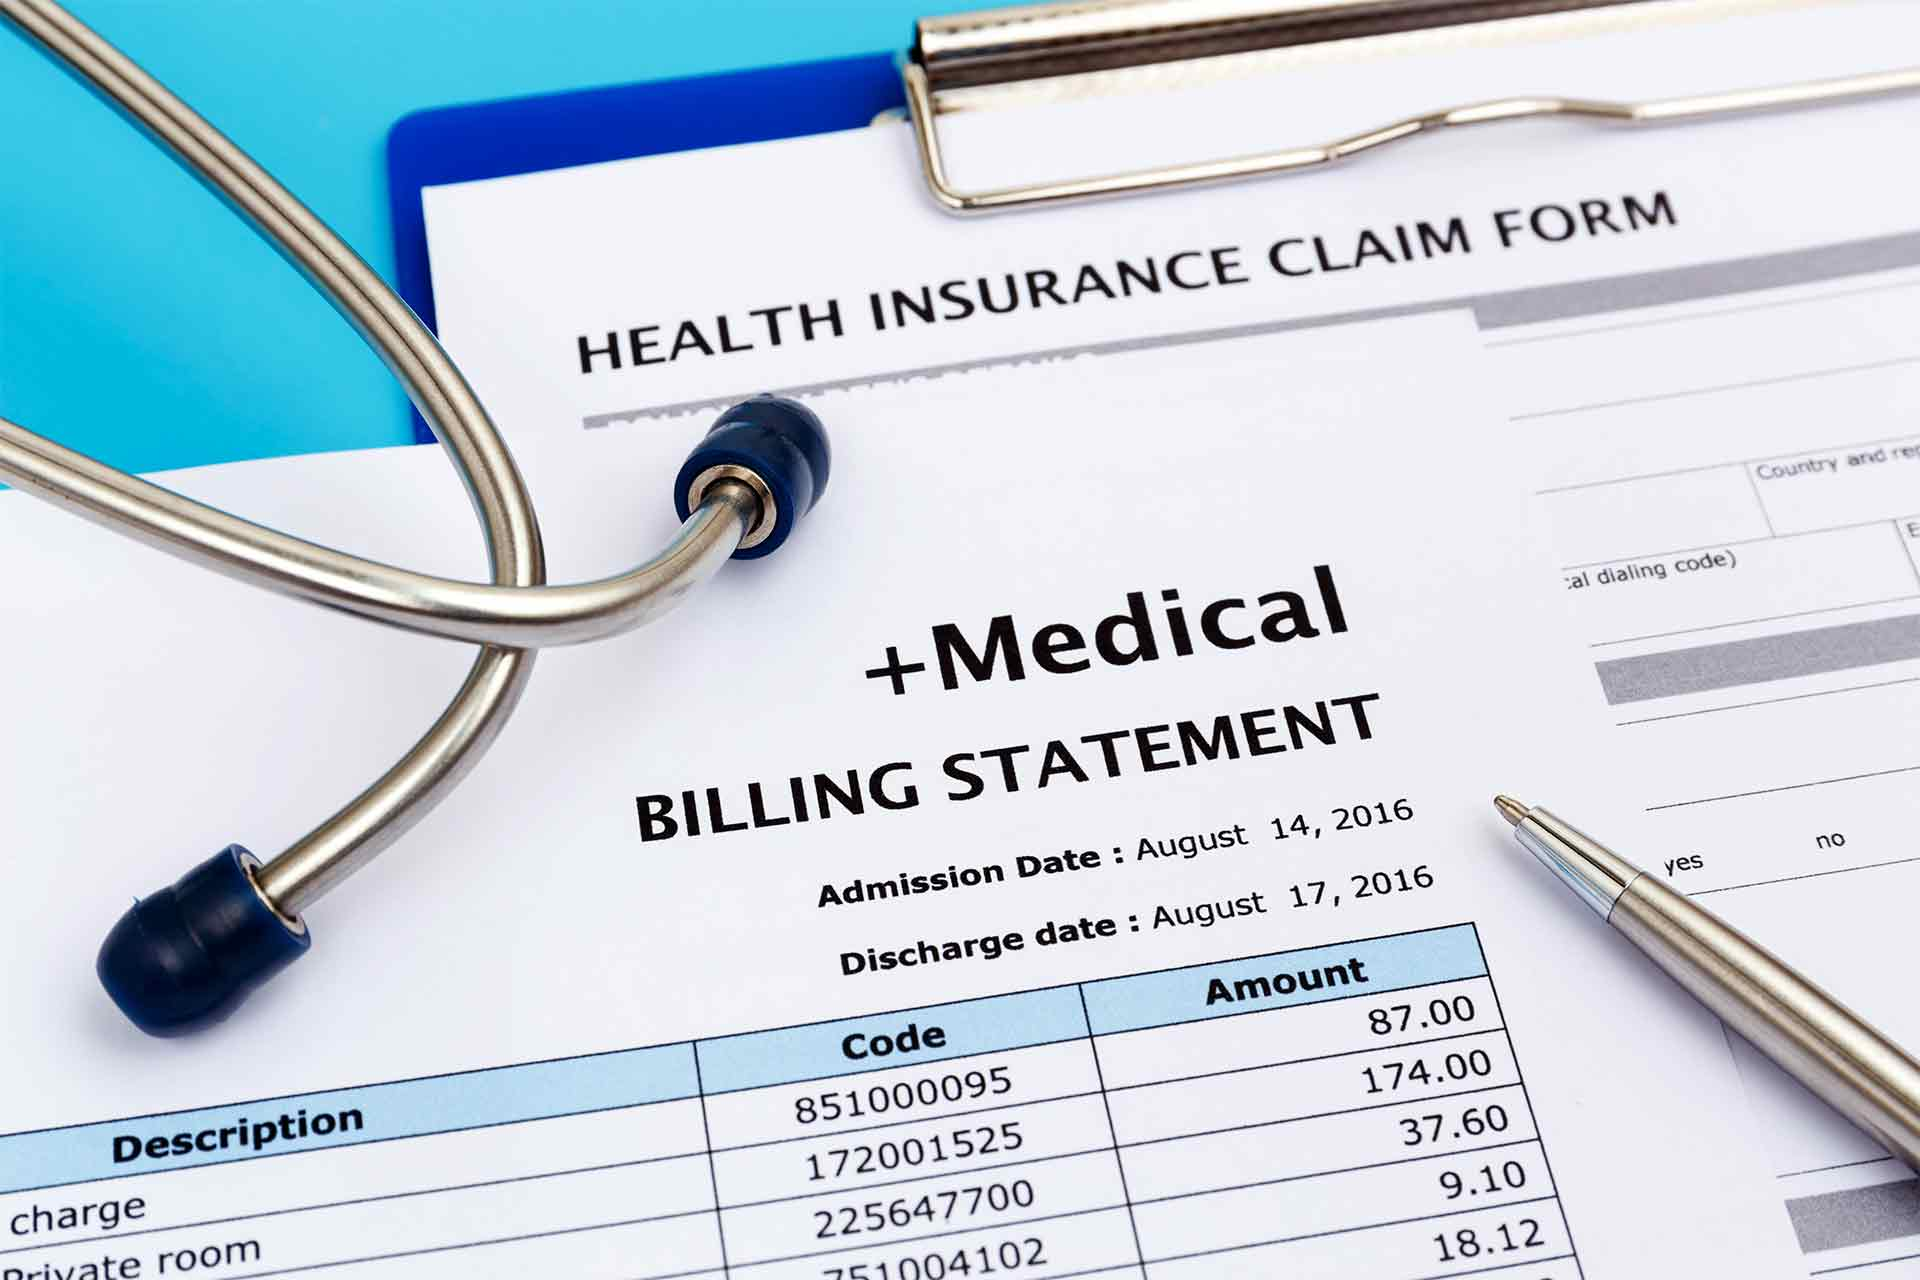 Centricity medical billing services